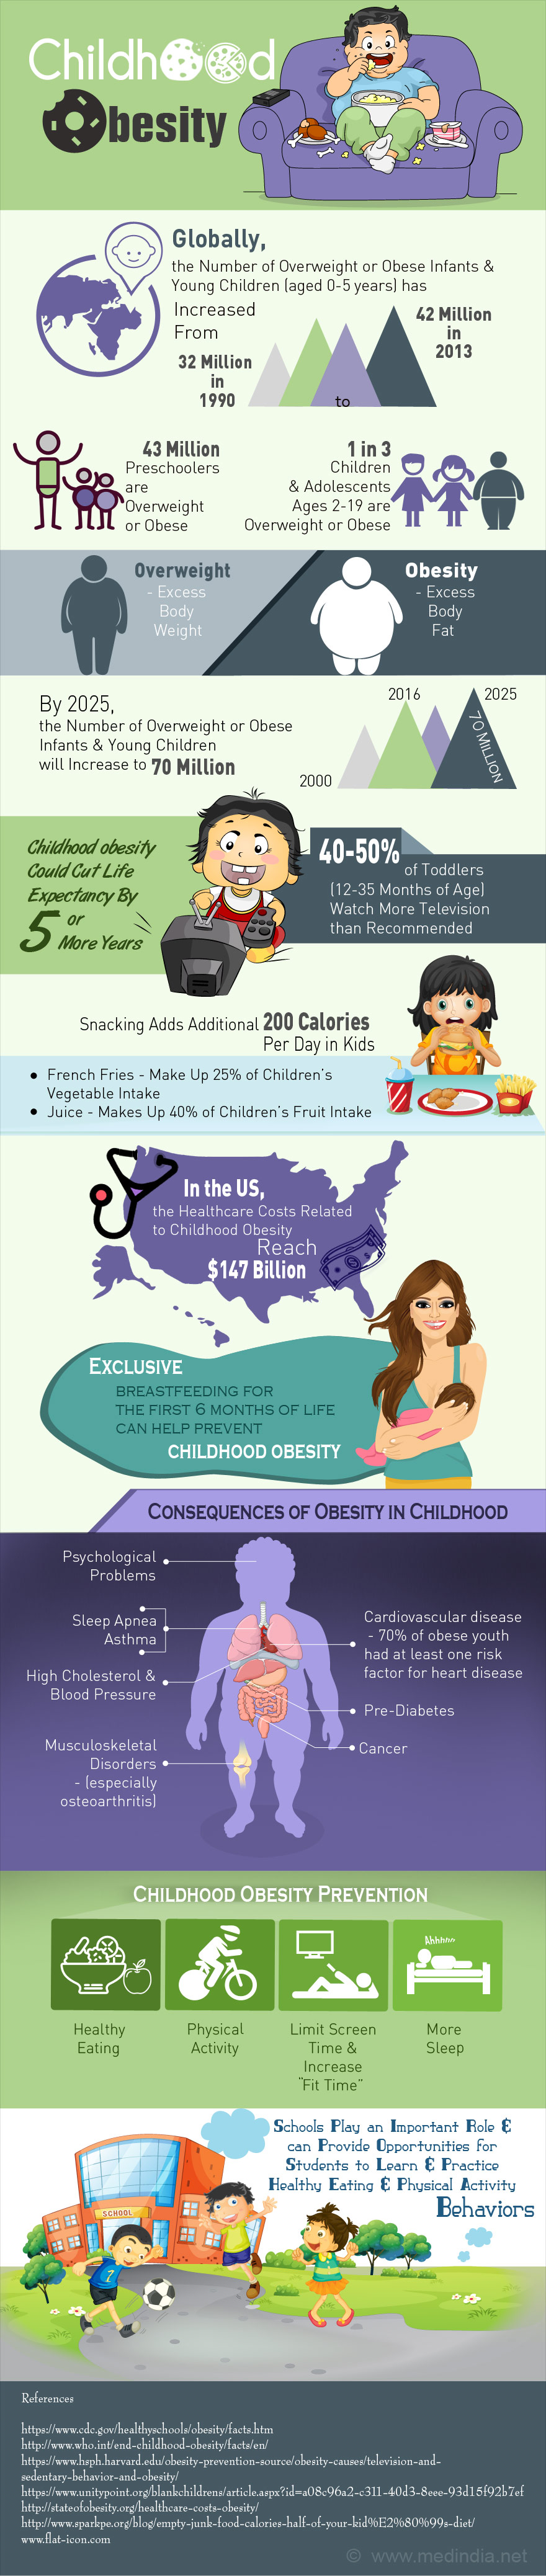 Childhood Obesity - Infographic